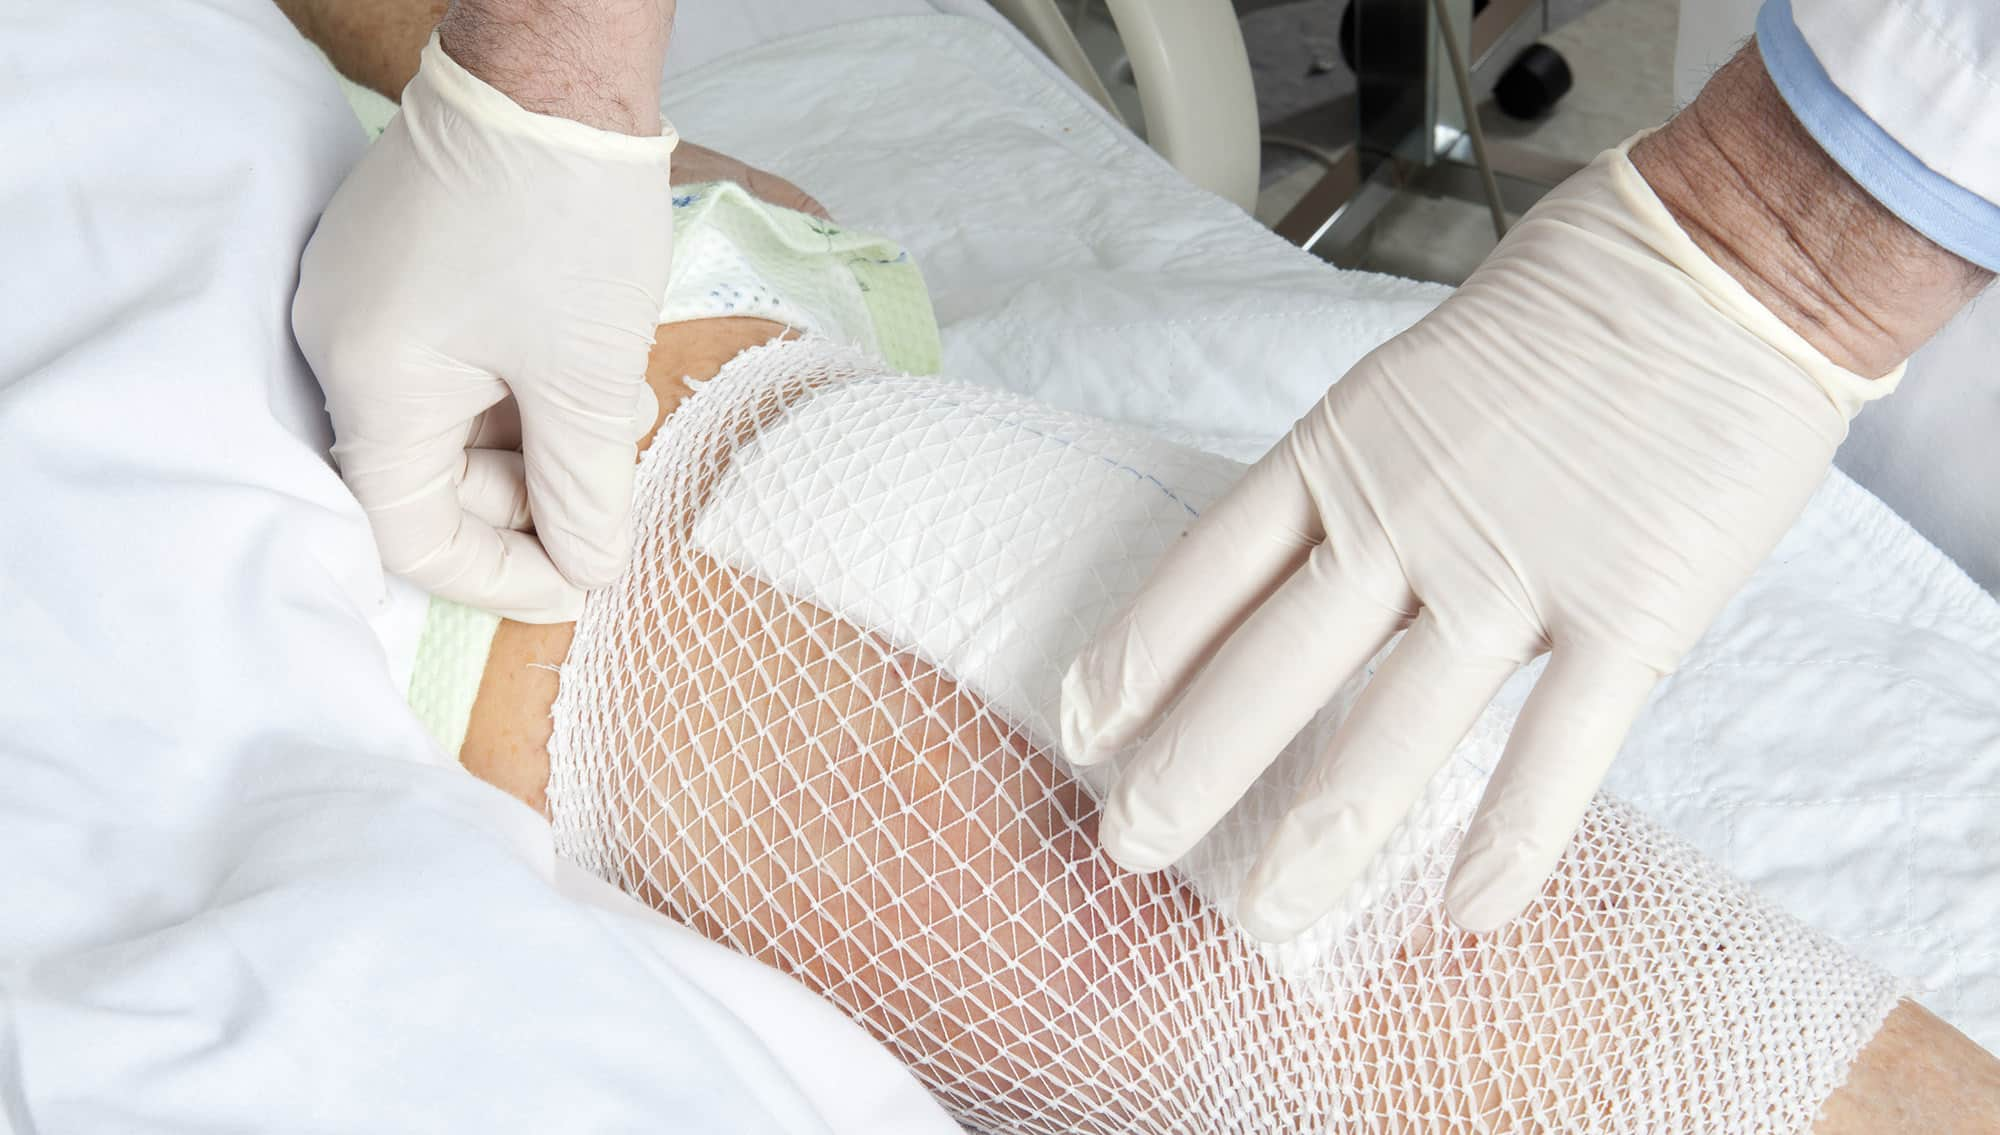 general practitioner fixing and cleaning wound